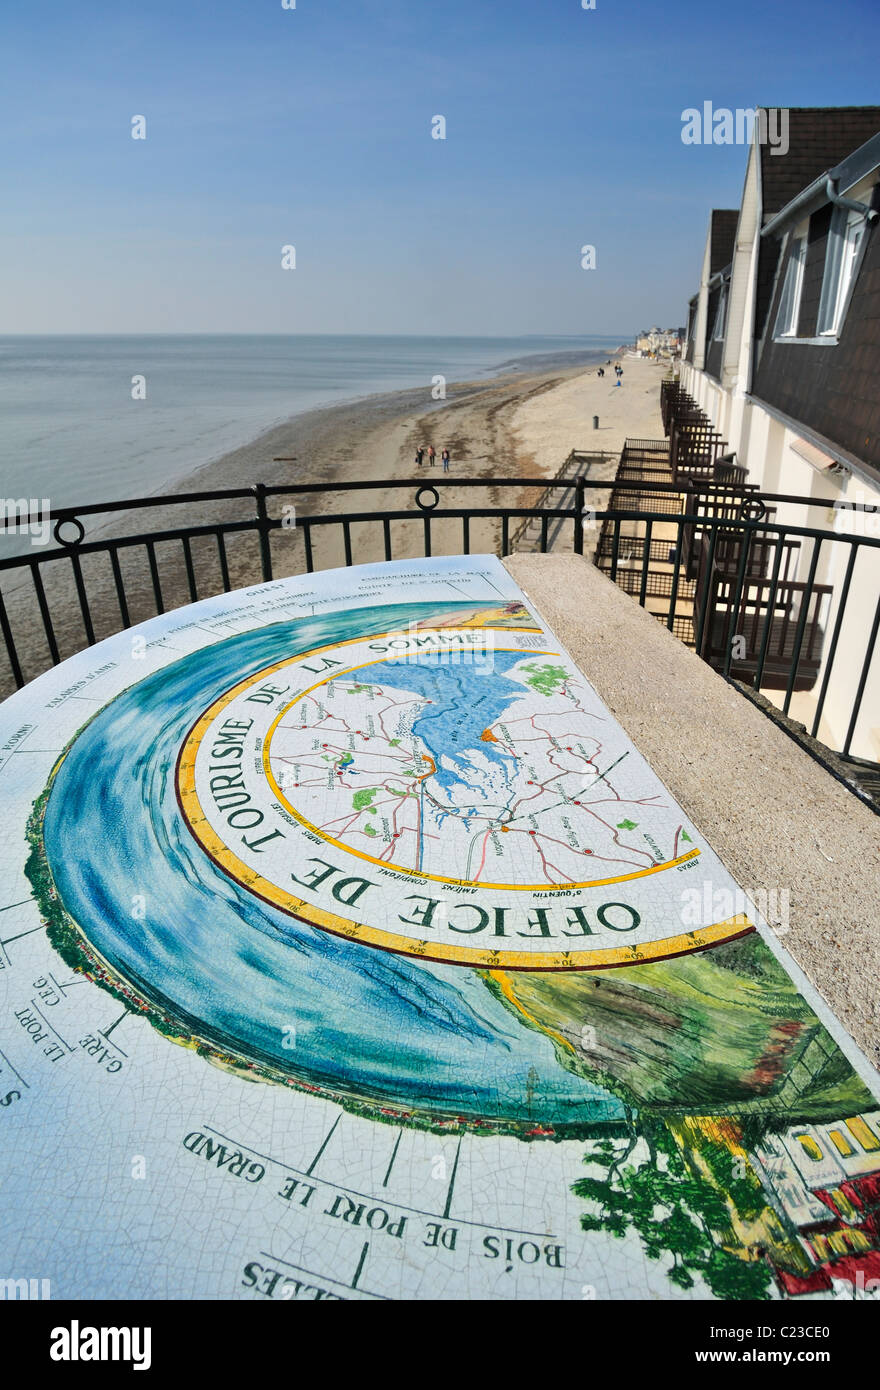 Orientation table at Le Crotoy, Bay of the Somme, Picardy, France - Stock Image